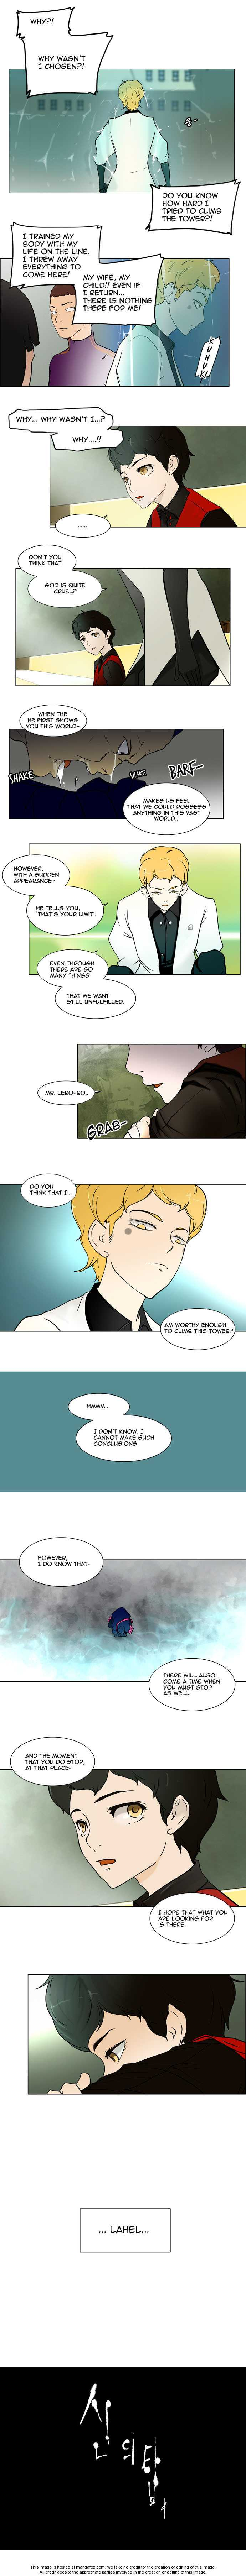 Tower of God 11 Page 2